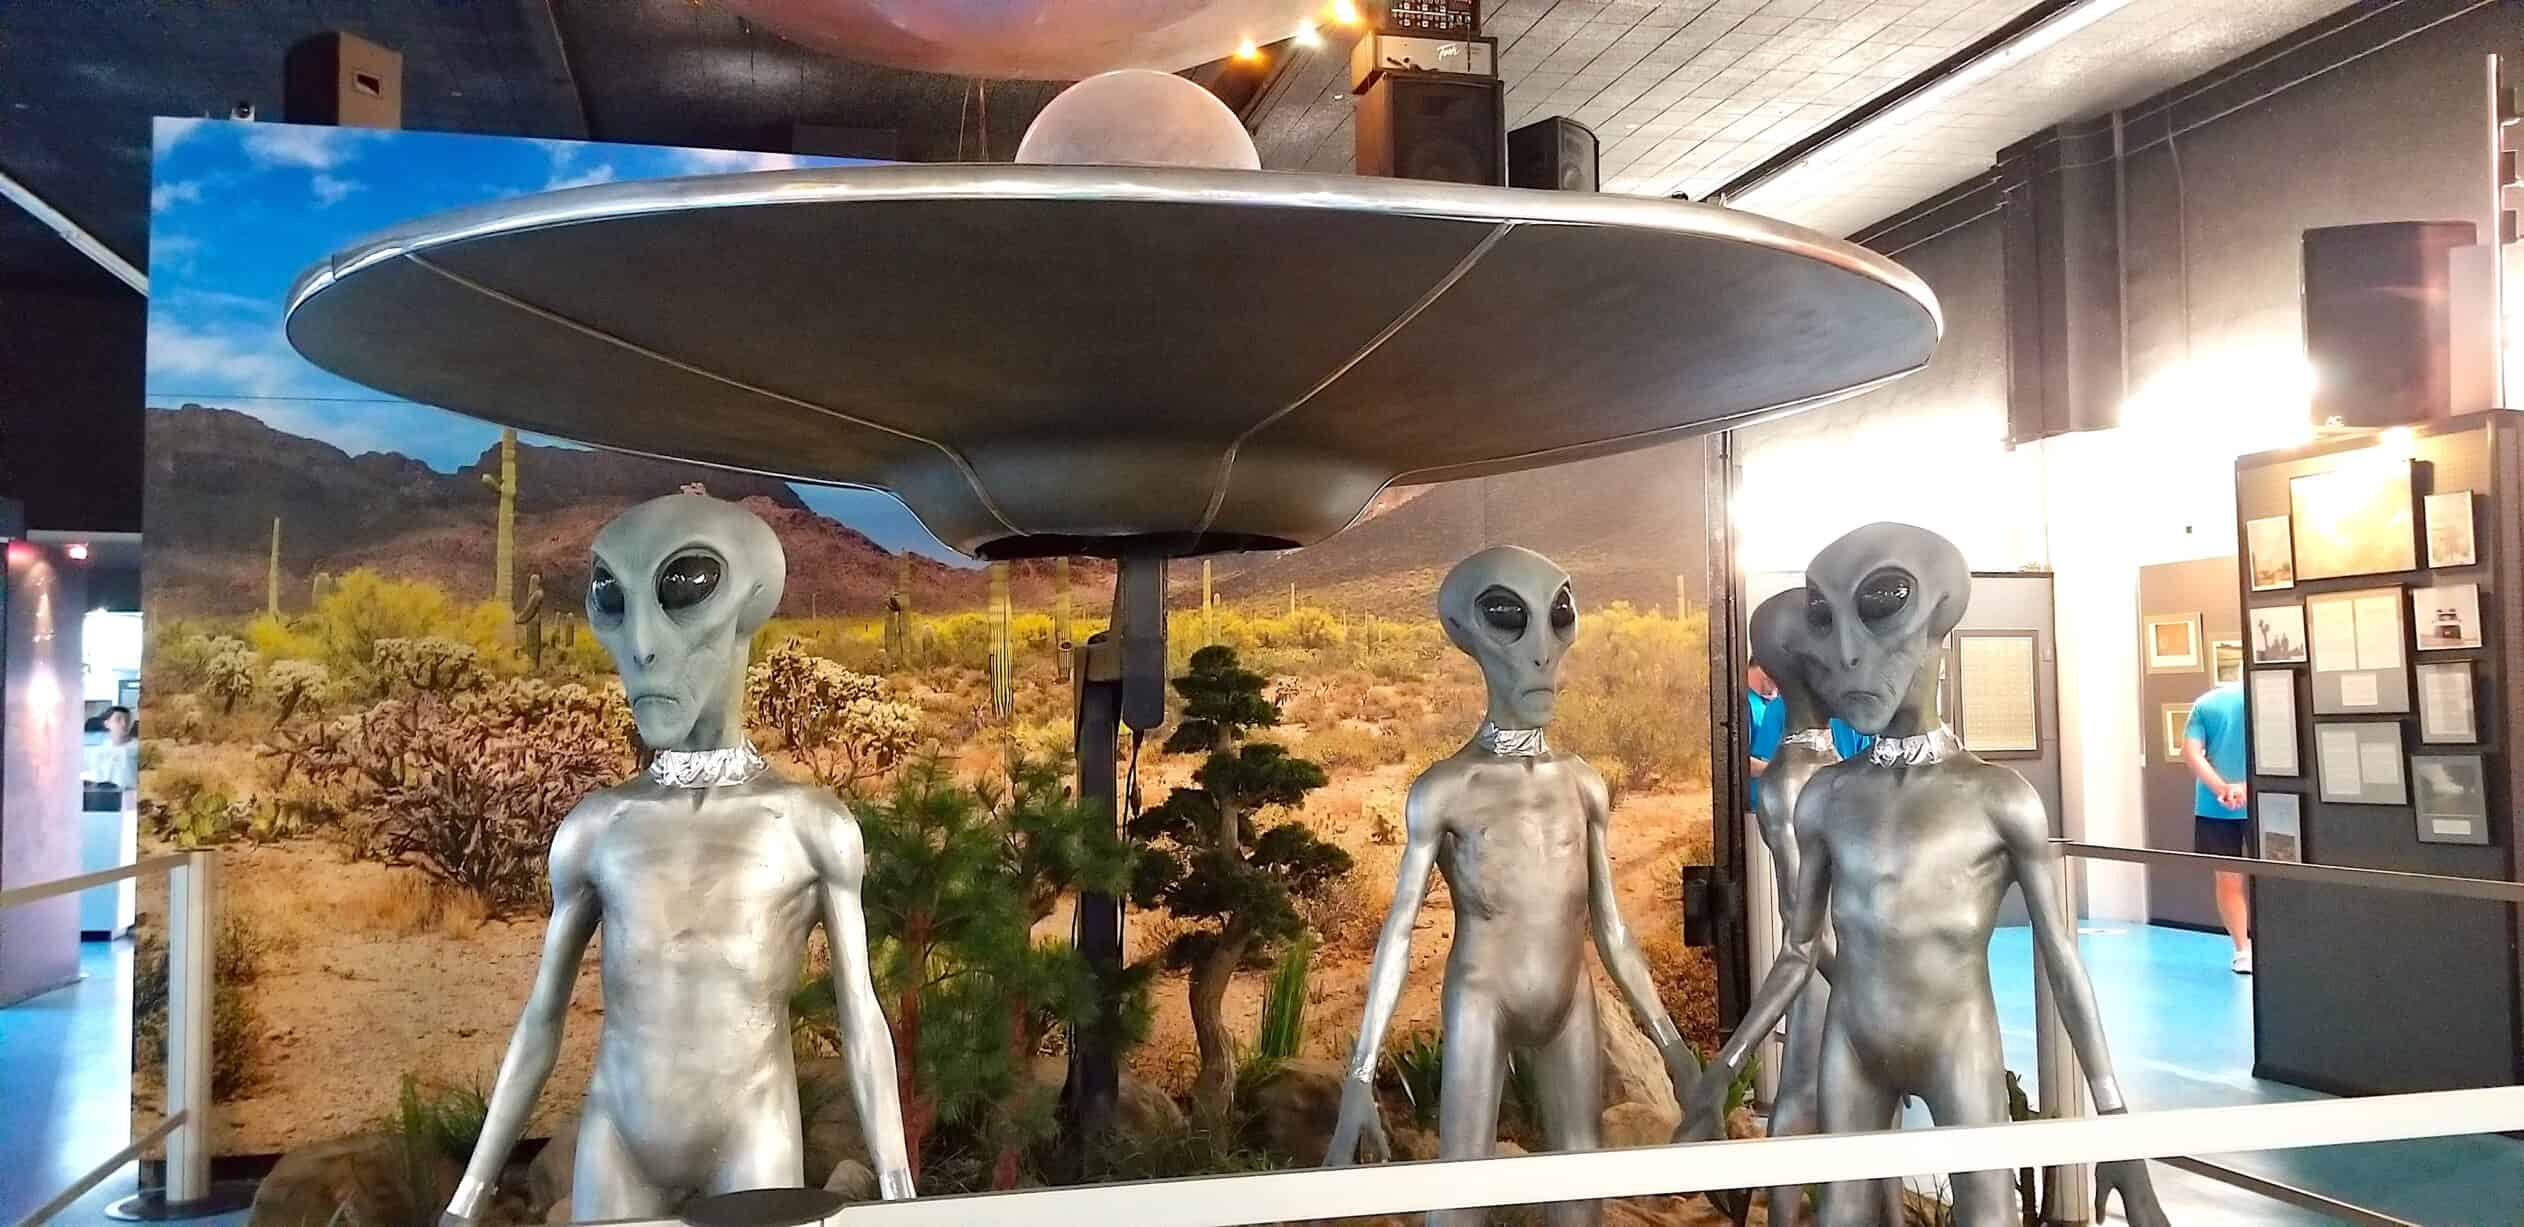 roswell alien spaceship display